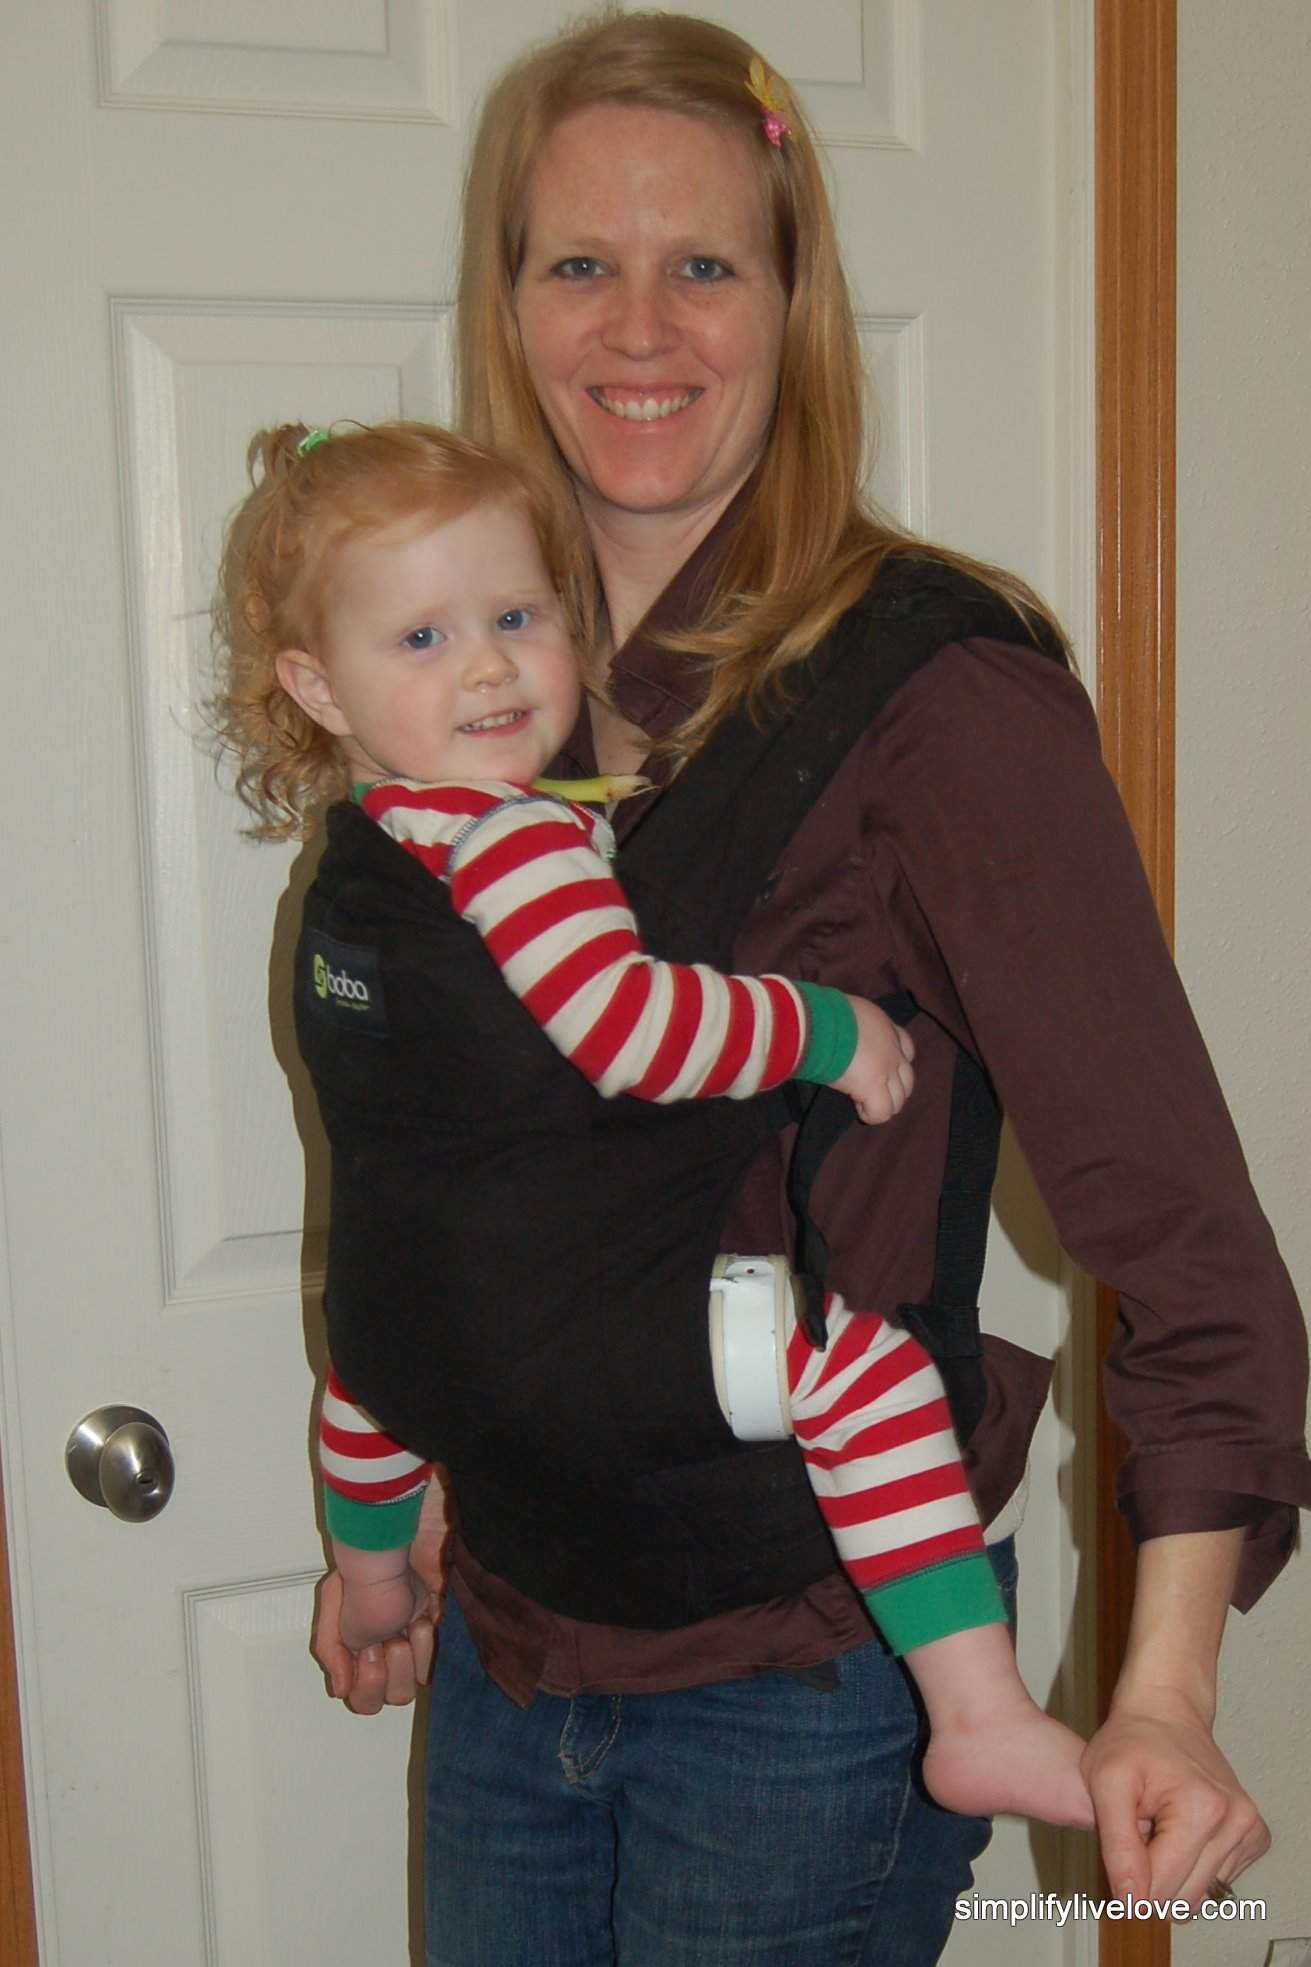 Boba baby carrier - hip dysplasia safe